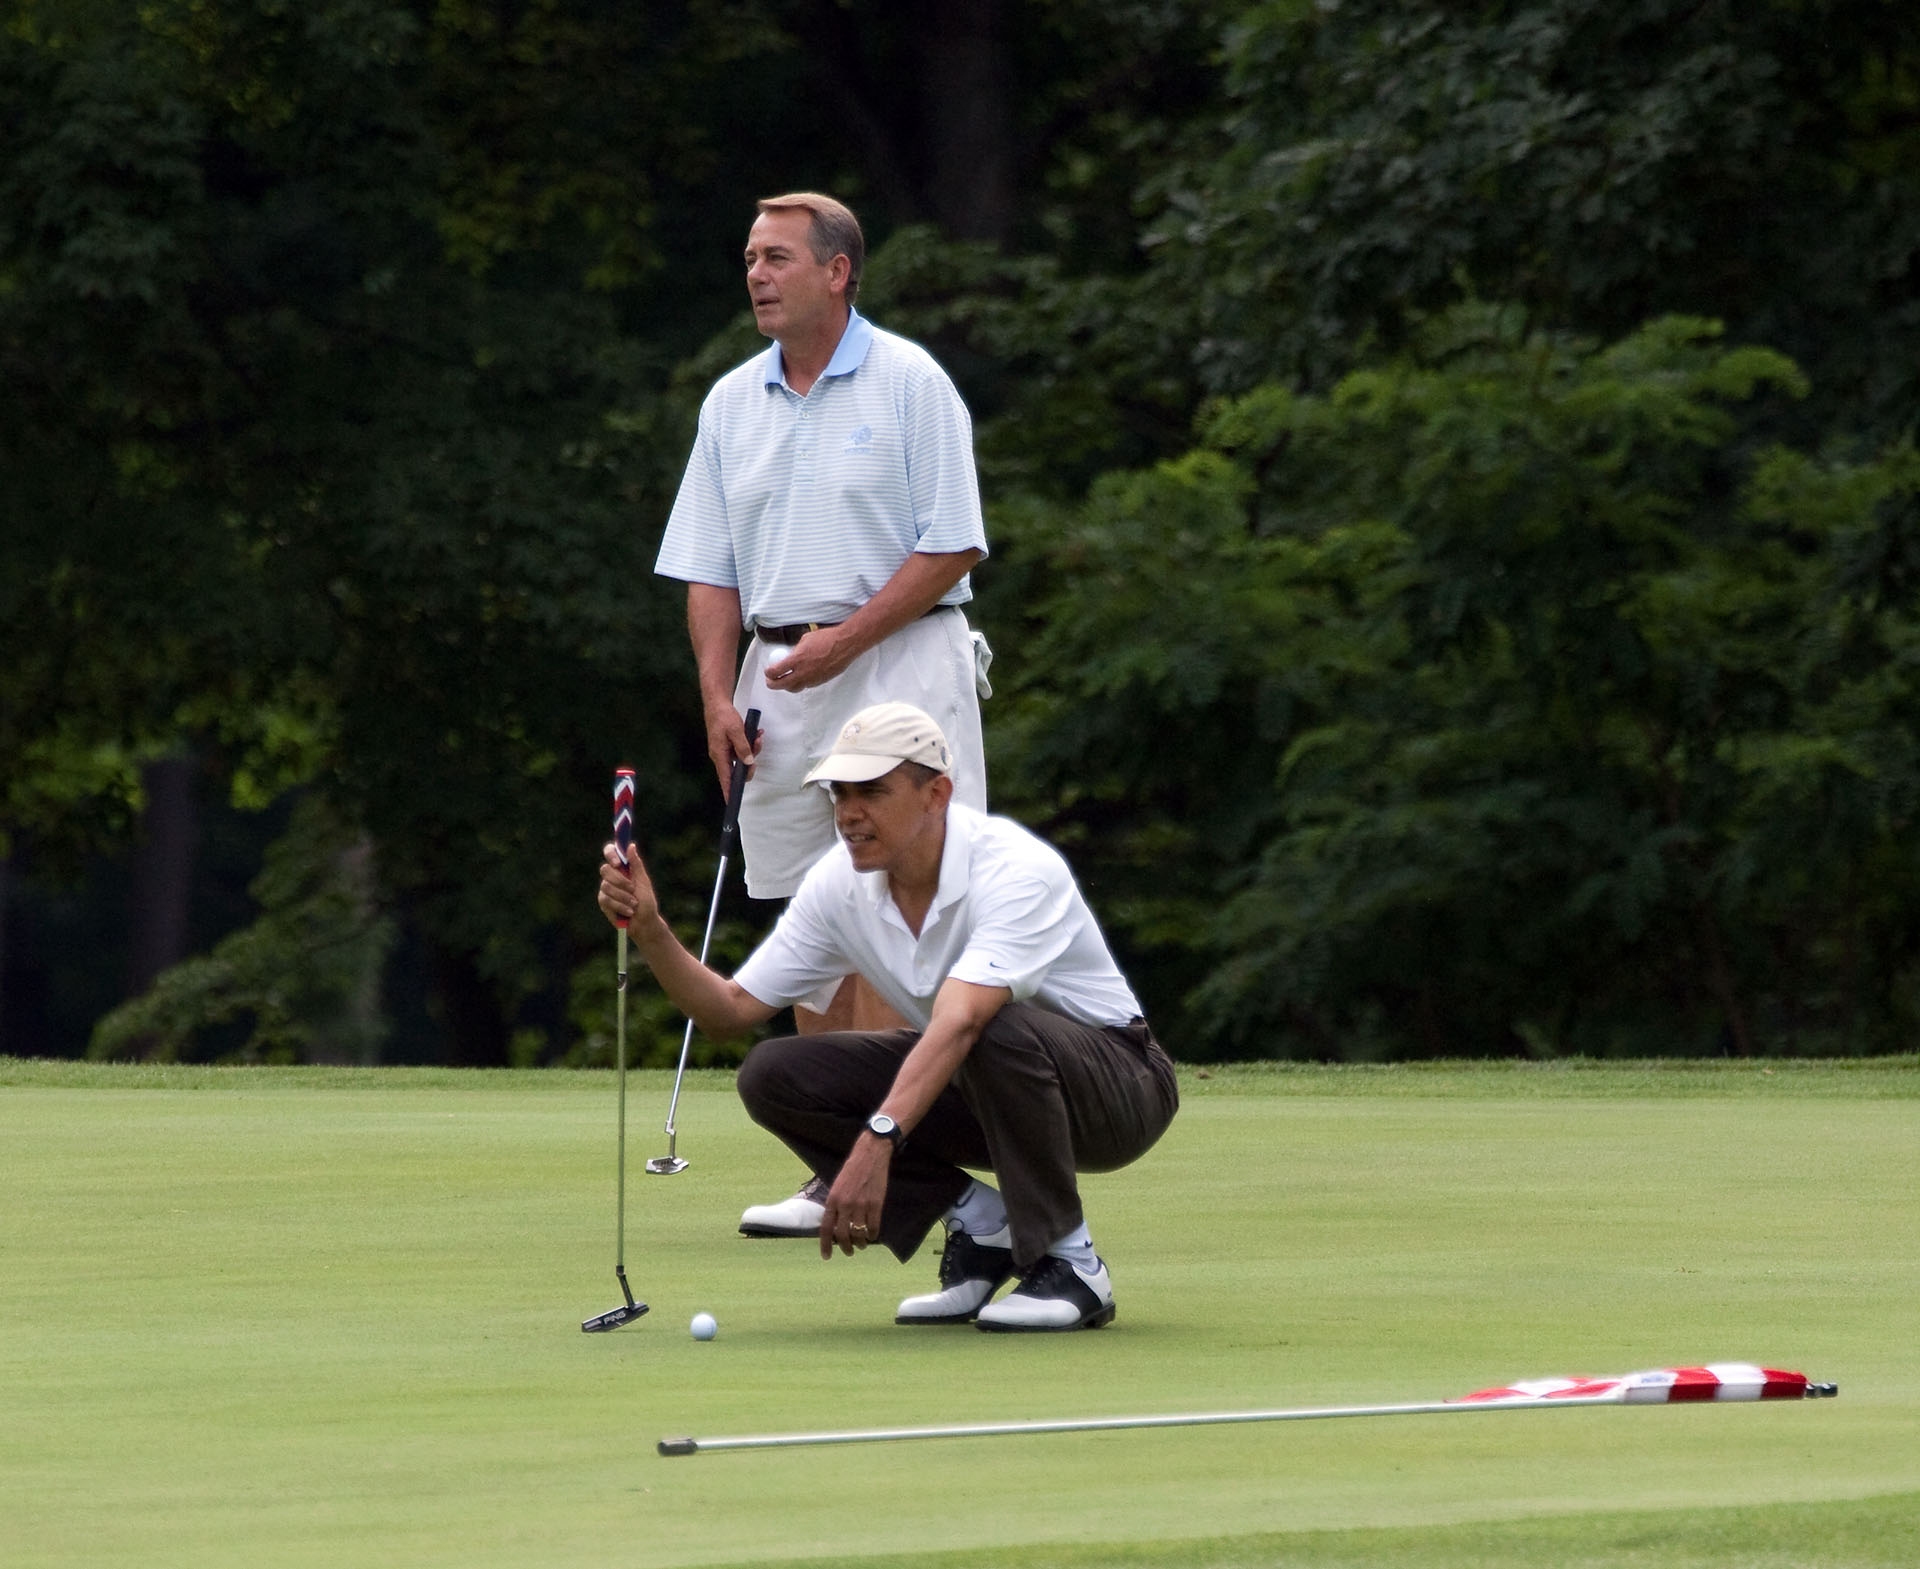 President Barack Obama lines up his putt as he plays a round of golf with House Speaker John Boehner